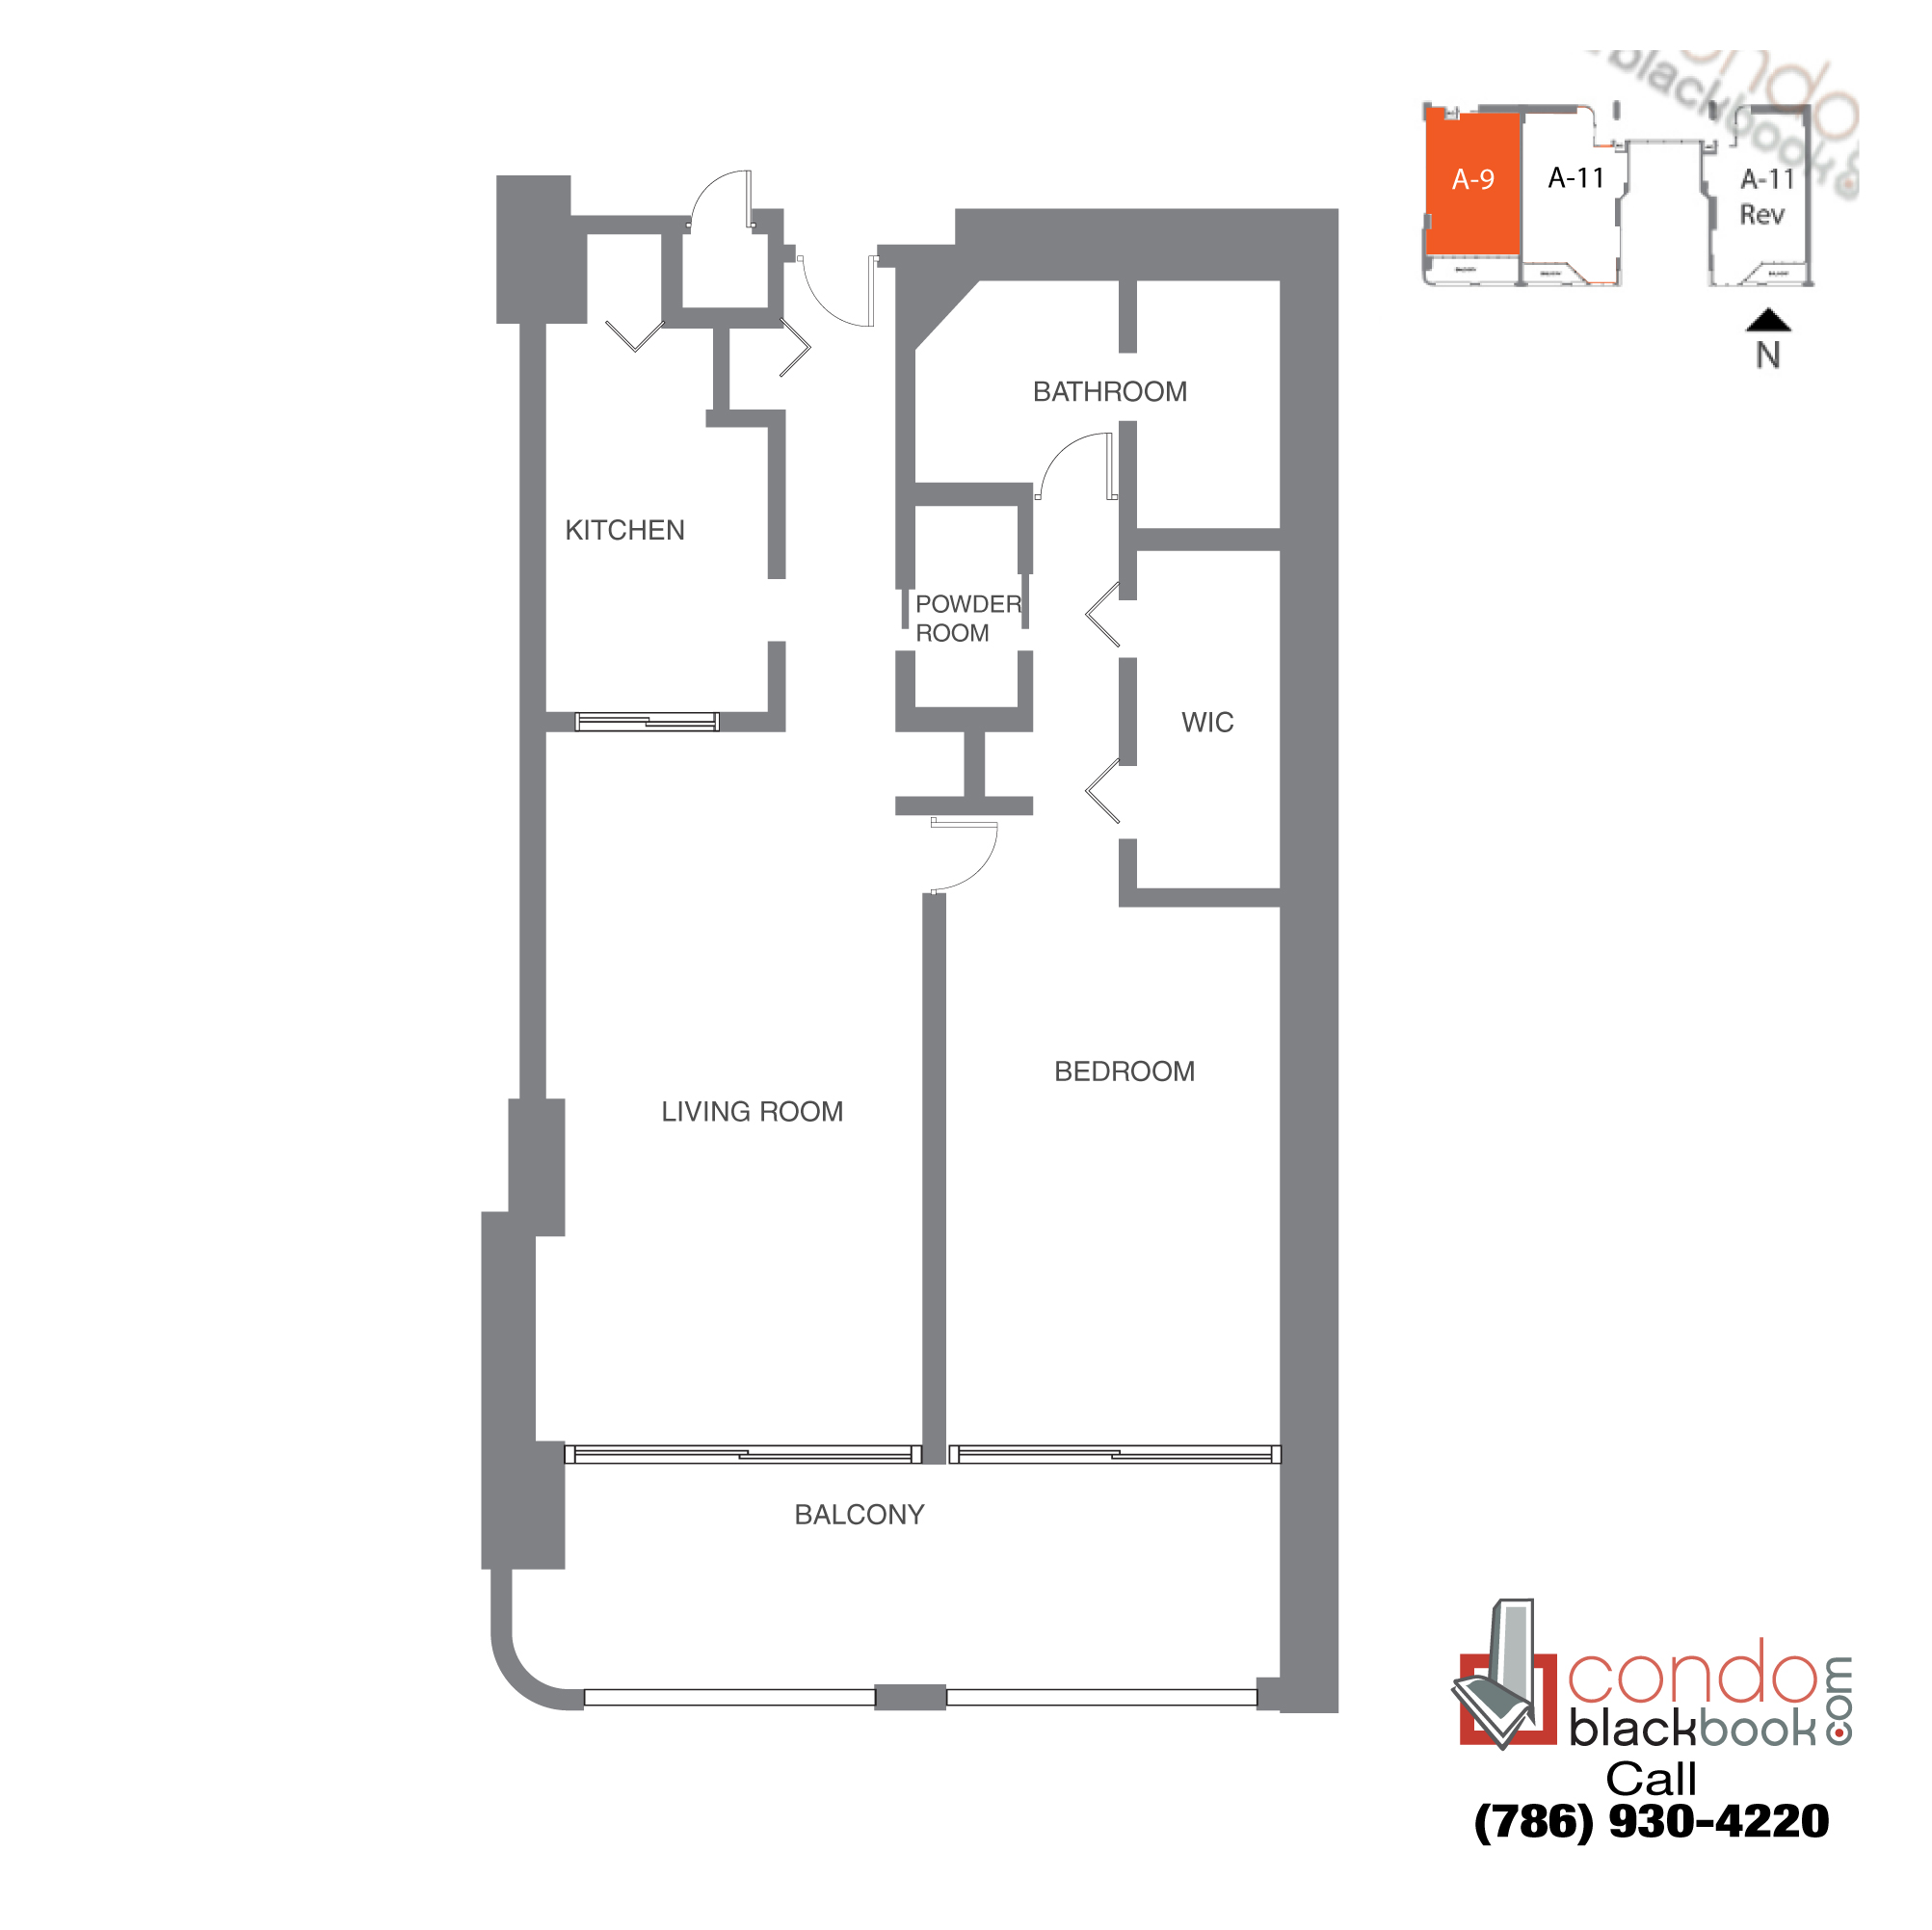 Floor plan for The Grand Arts & Entertainment District Miami, model Unit 44, line A-1044 to A-4244,  B-4144, C-4044, D-3944, 1/1.5 bedrooms, 1,067 sq ft